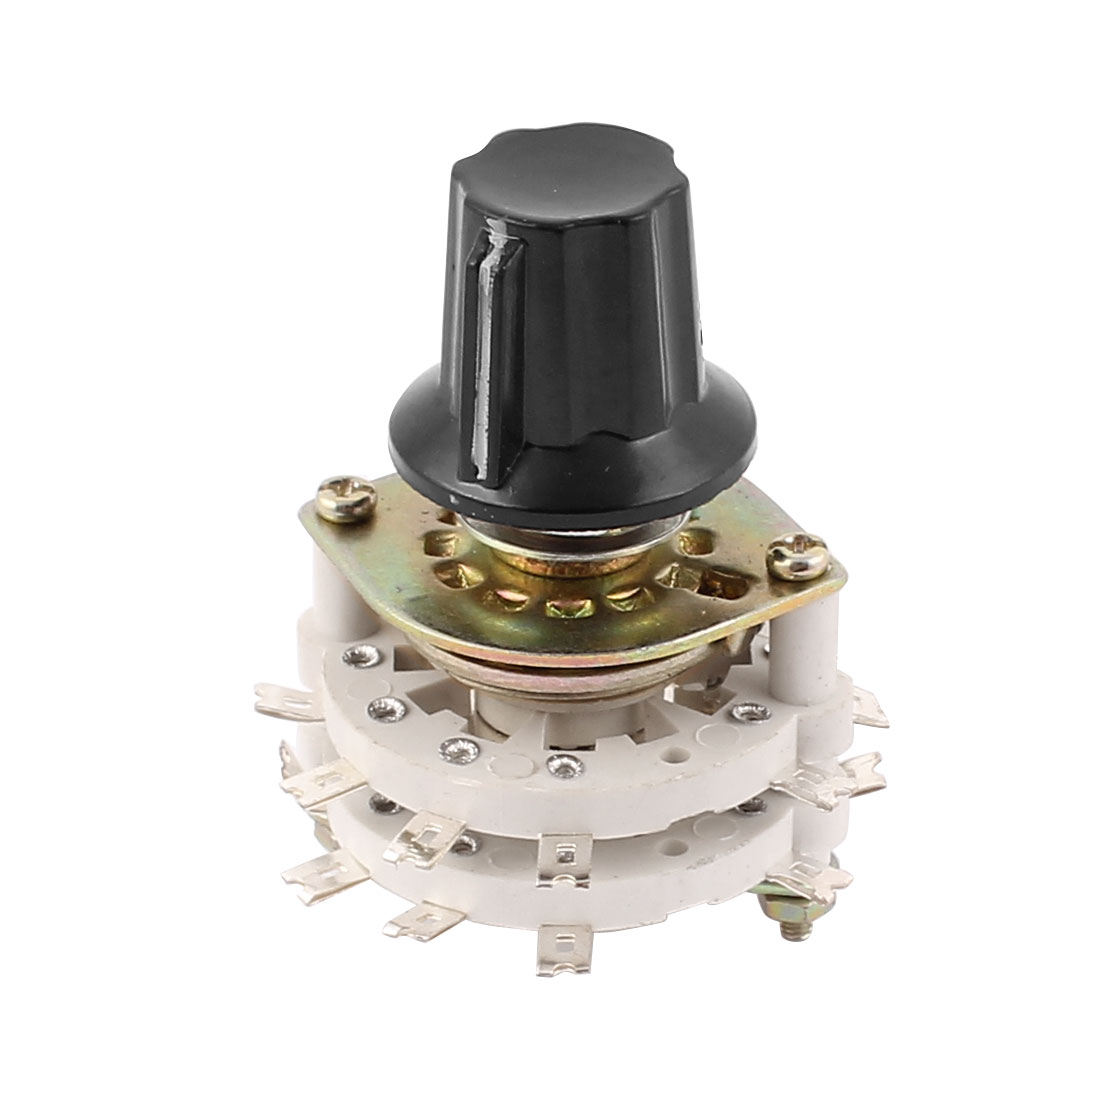 KCZ 4 Pole 4 Throw 6mm/0.24inch Shaft Band Channel Rotary Switch Selector w Cap